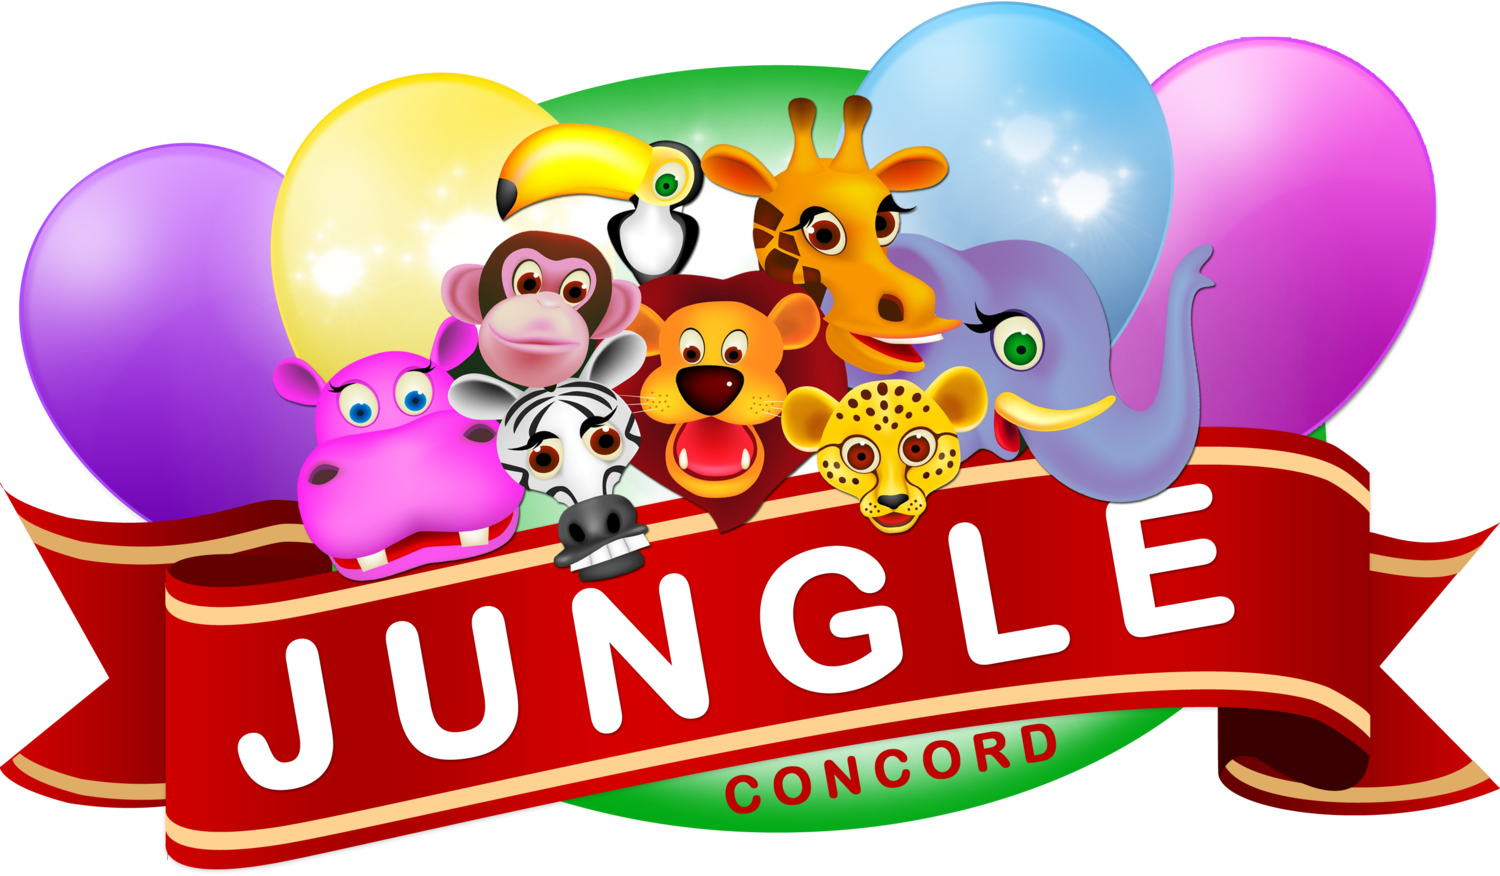 Teen clipart welcome party. Job application jungle concord